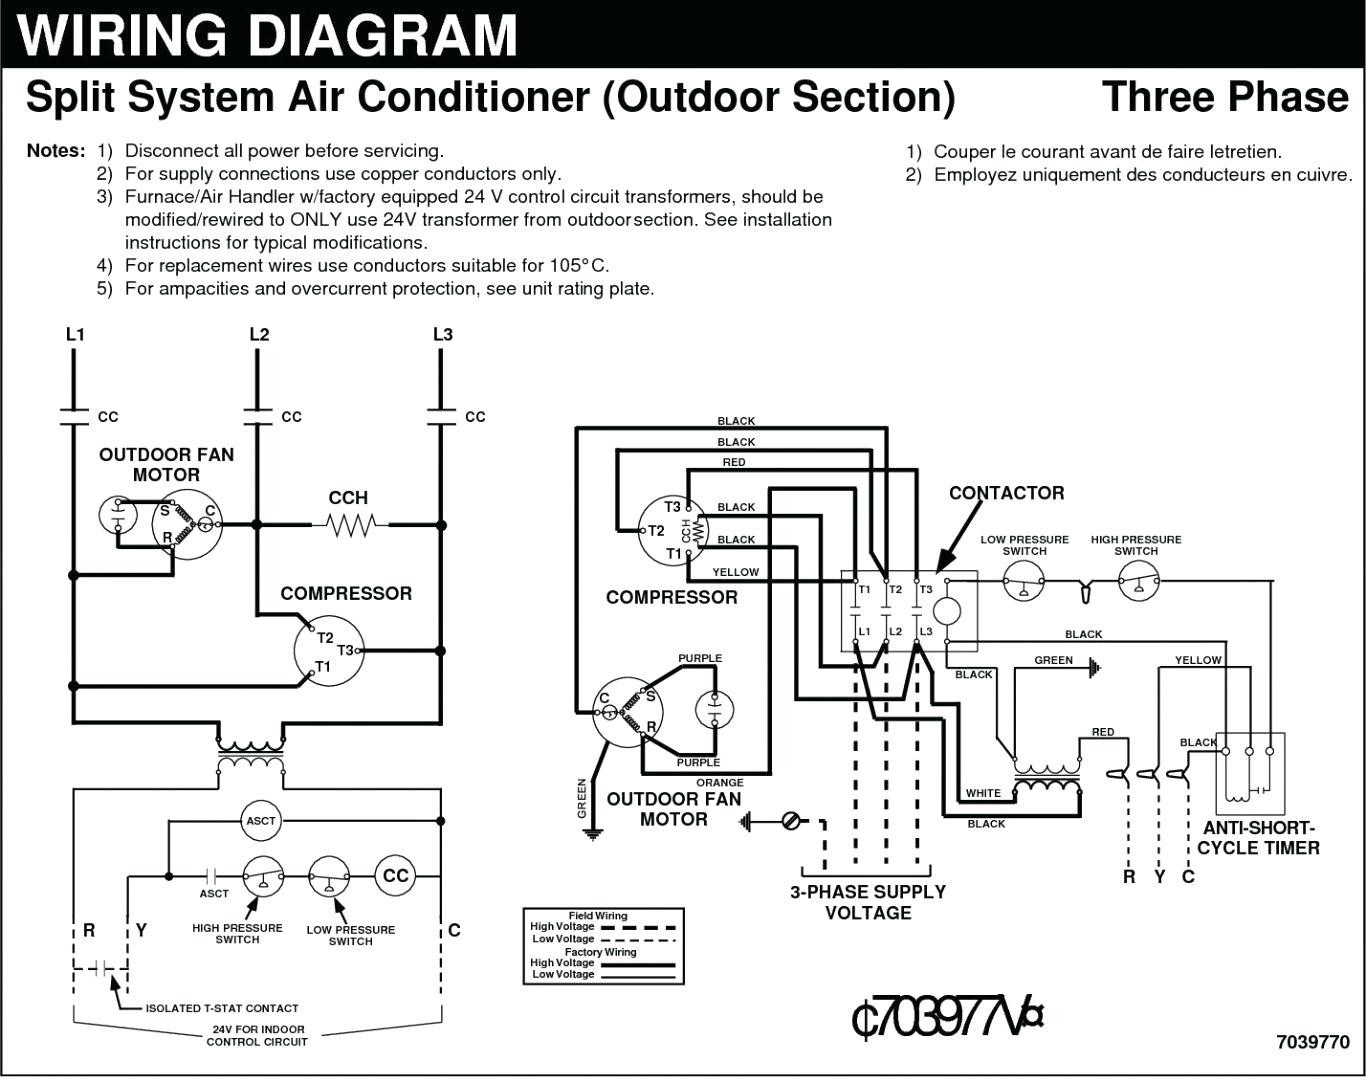 Embraco Compressor Wiring | Best Wiring Library - Embraco Compressor Wiring Diagram